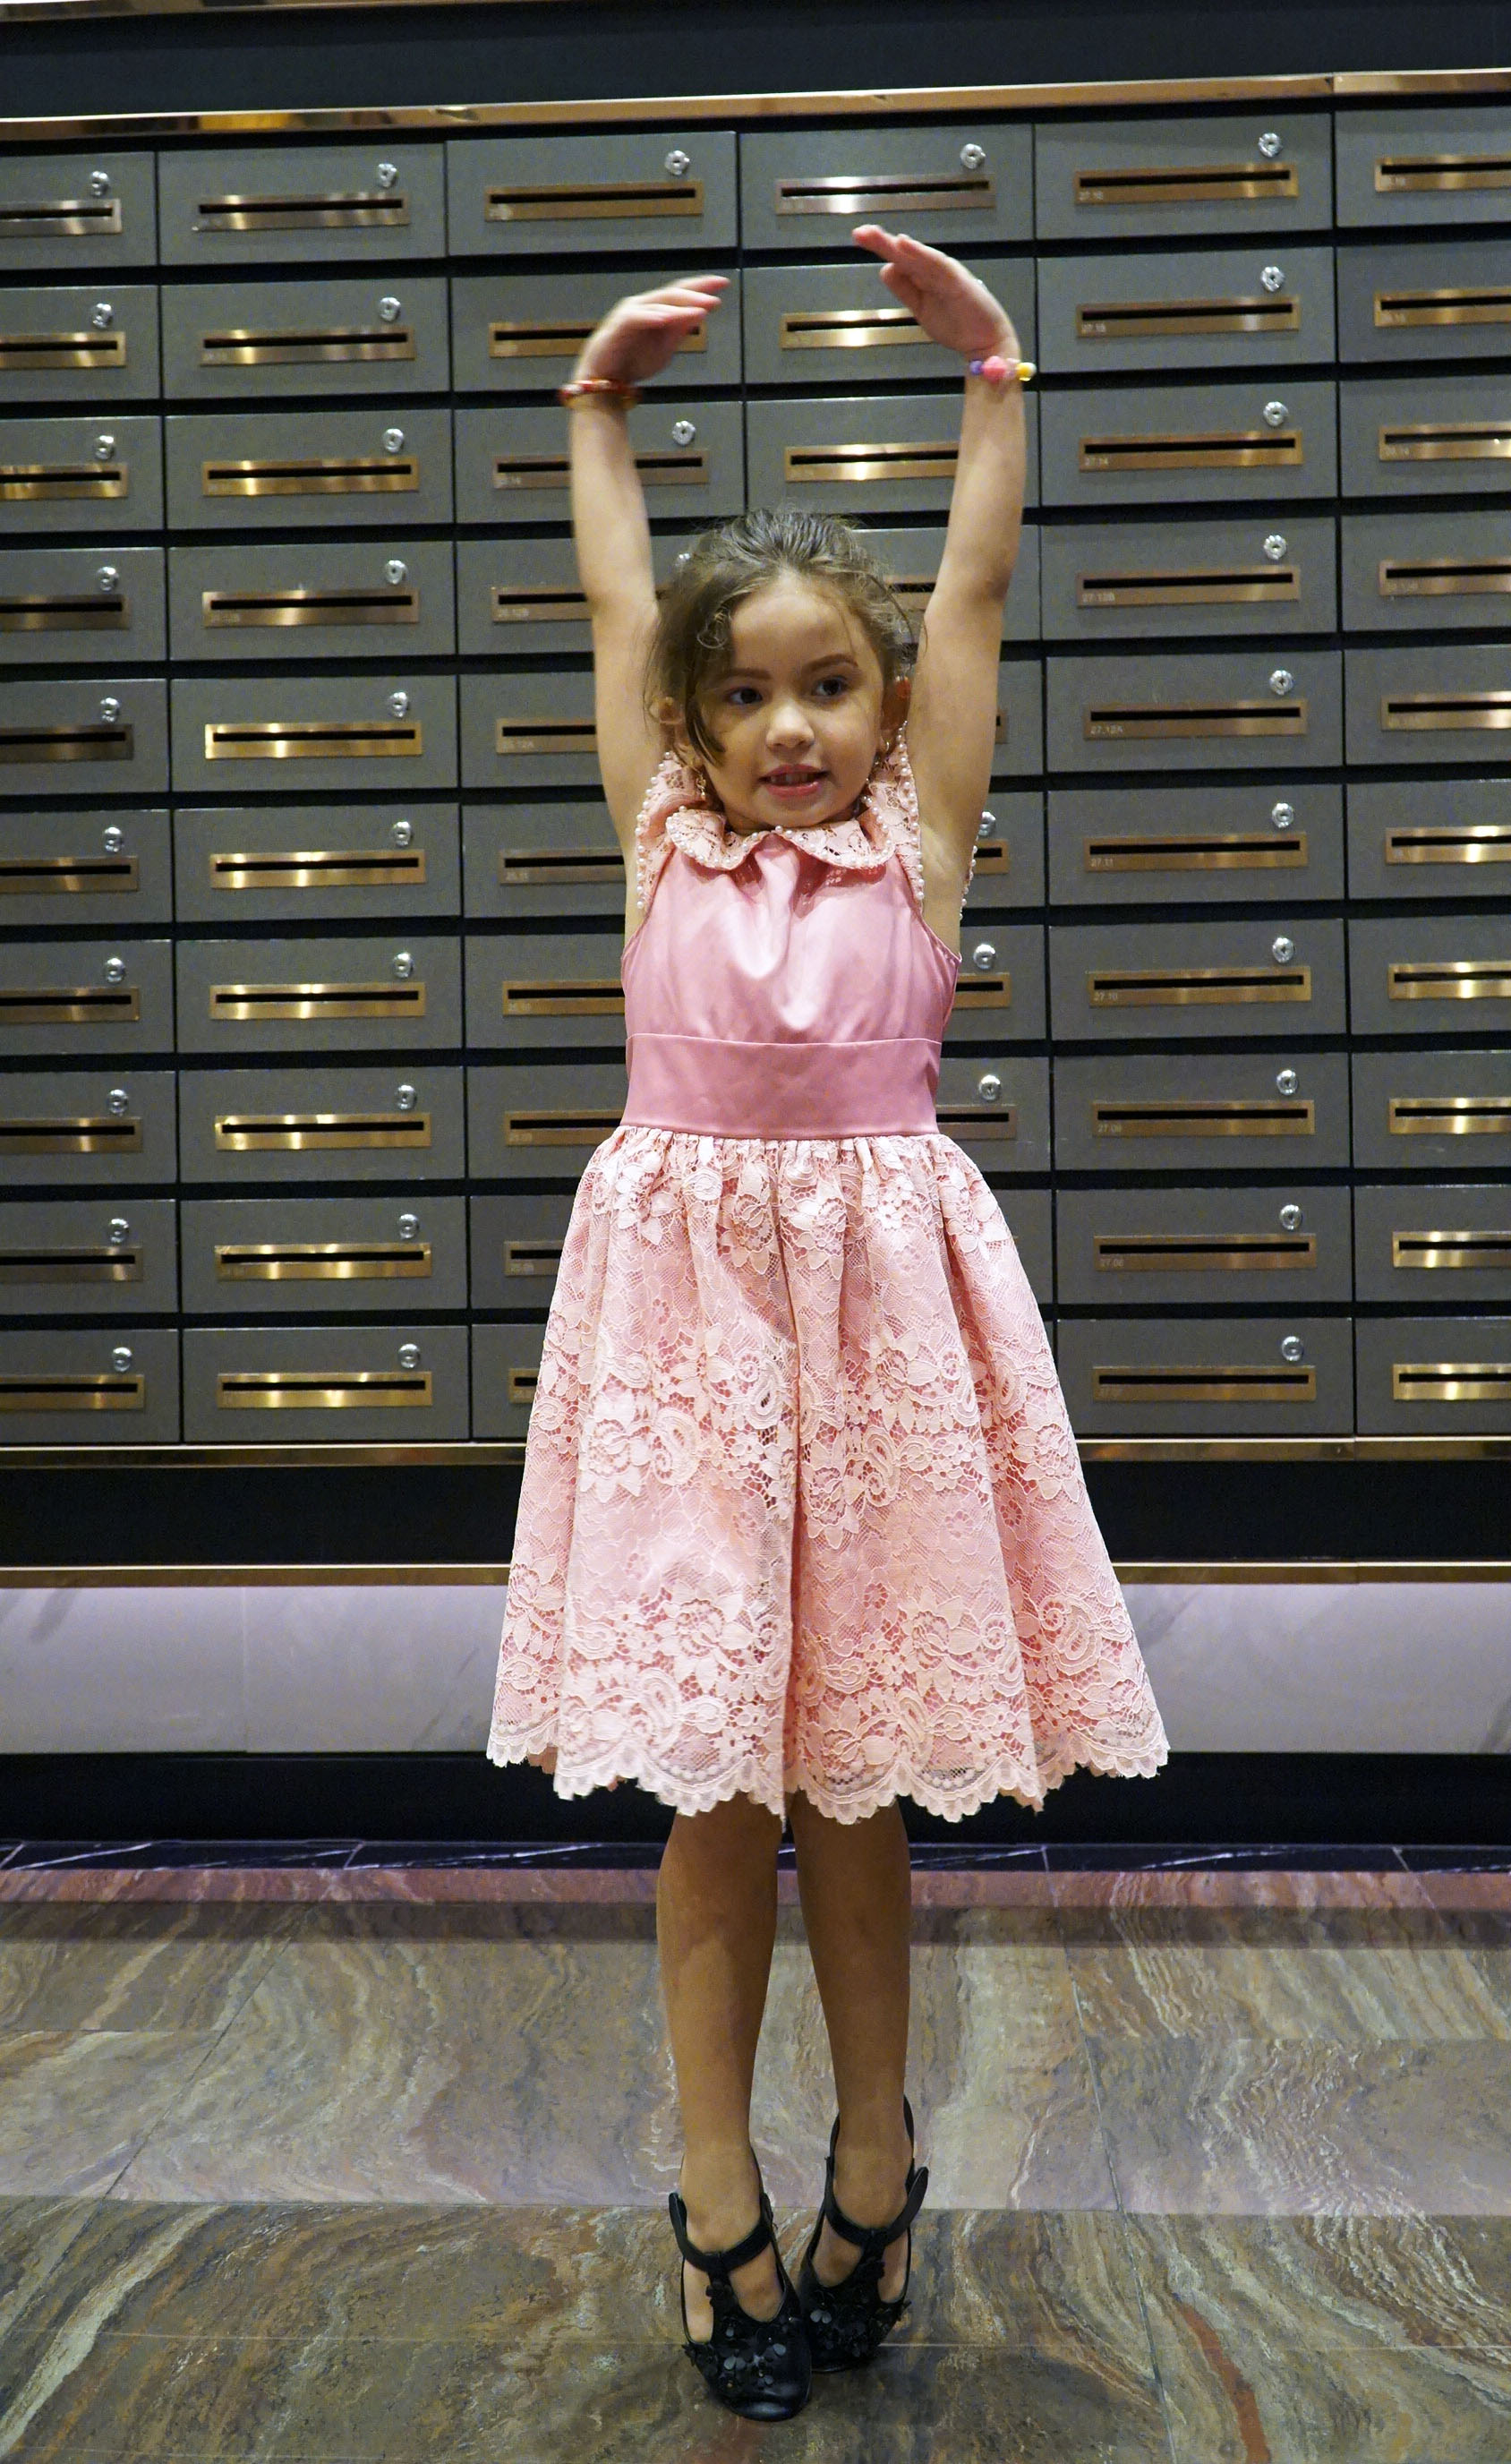 Swar shared she loves learning ballet. Photo: Duyen Phan/ Tuoi Tre